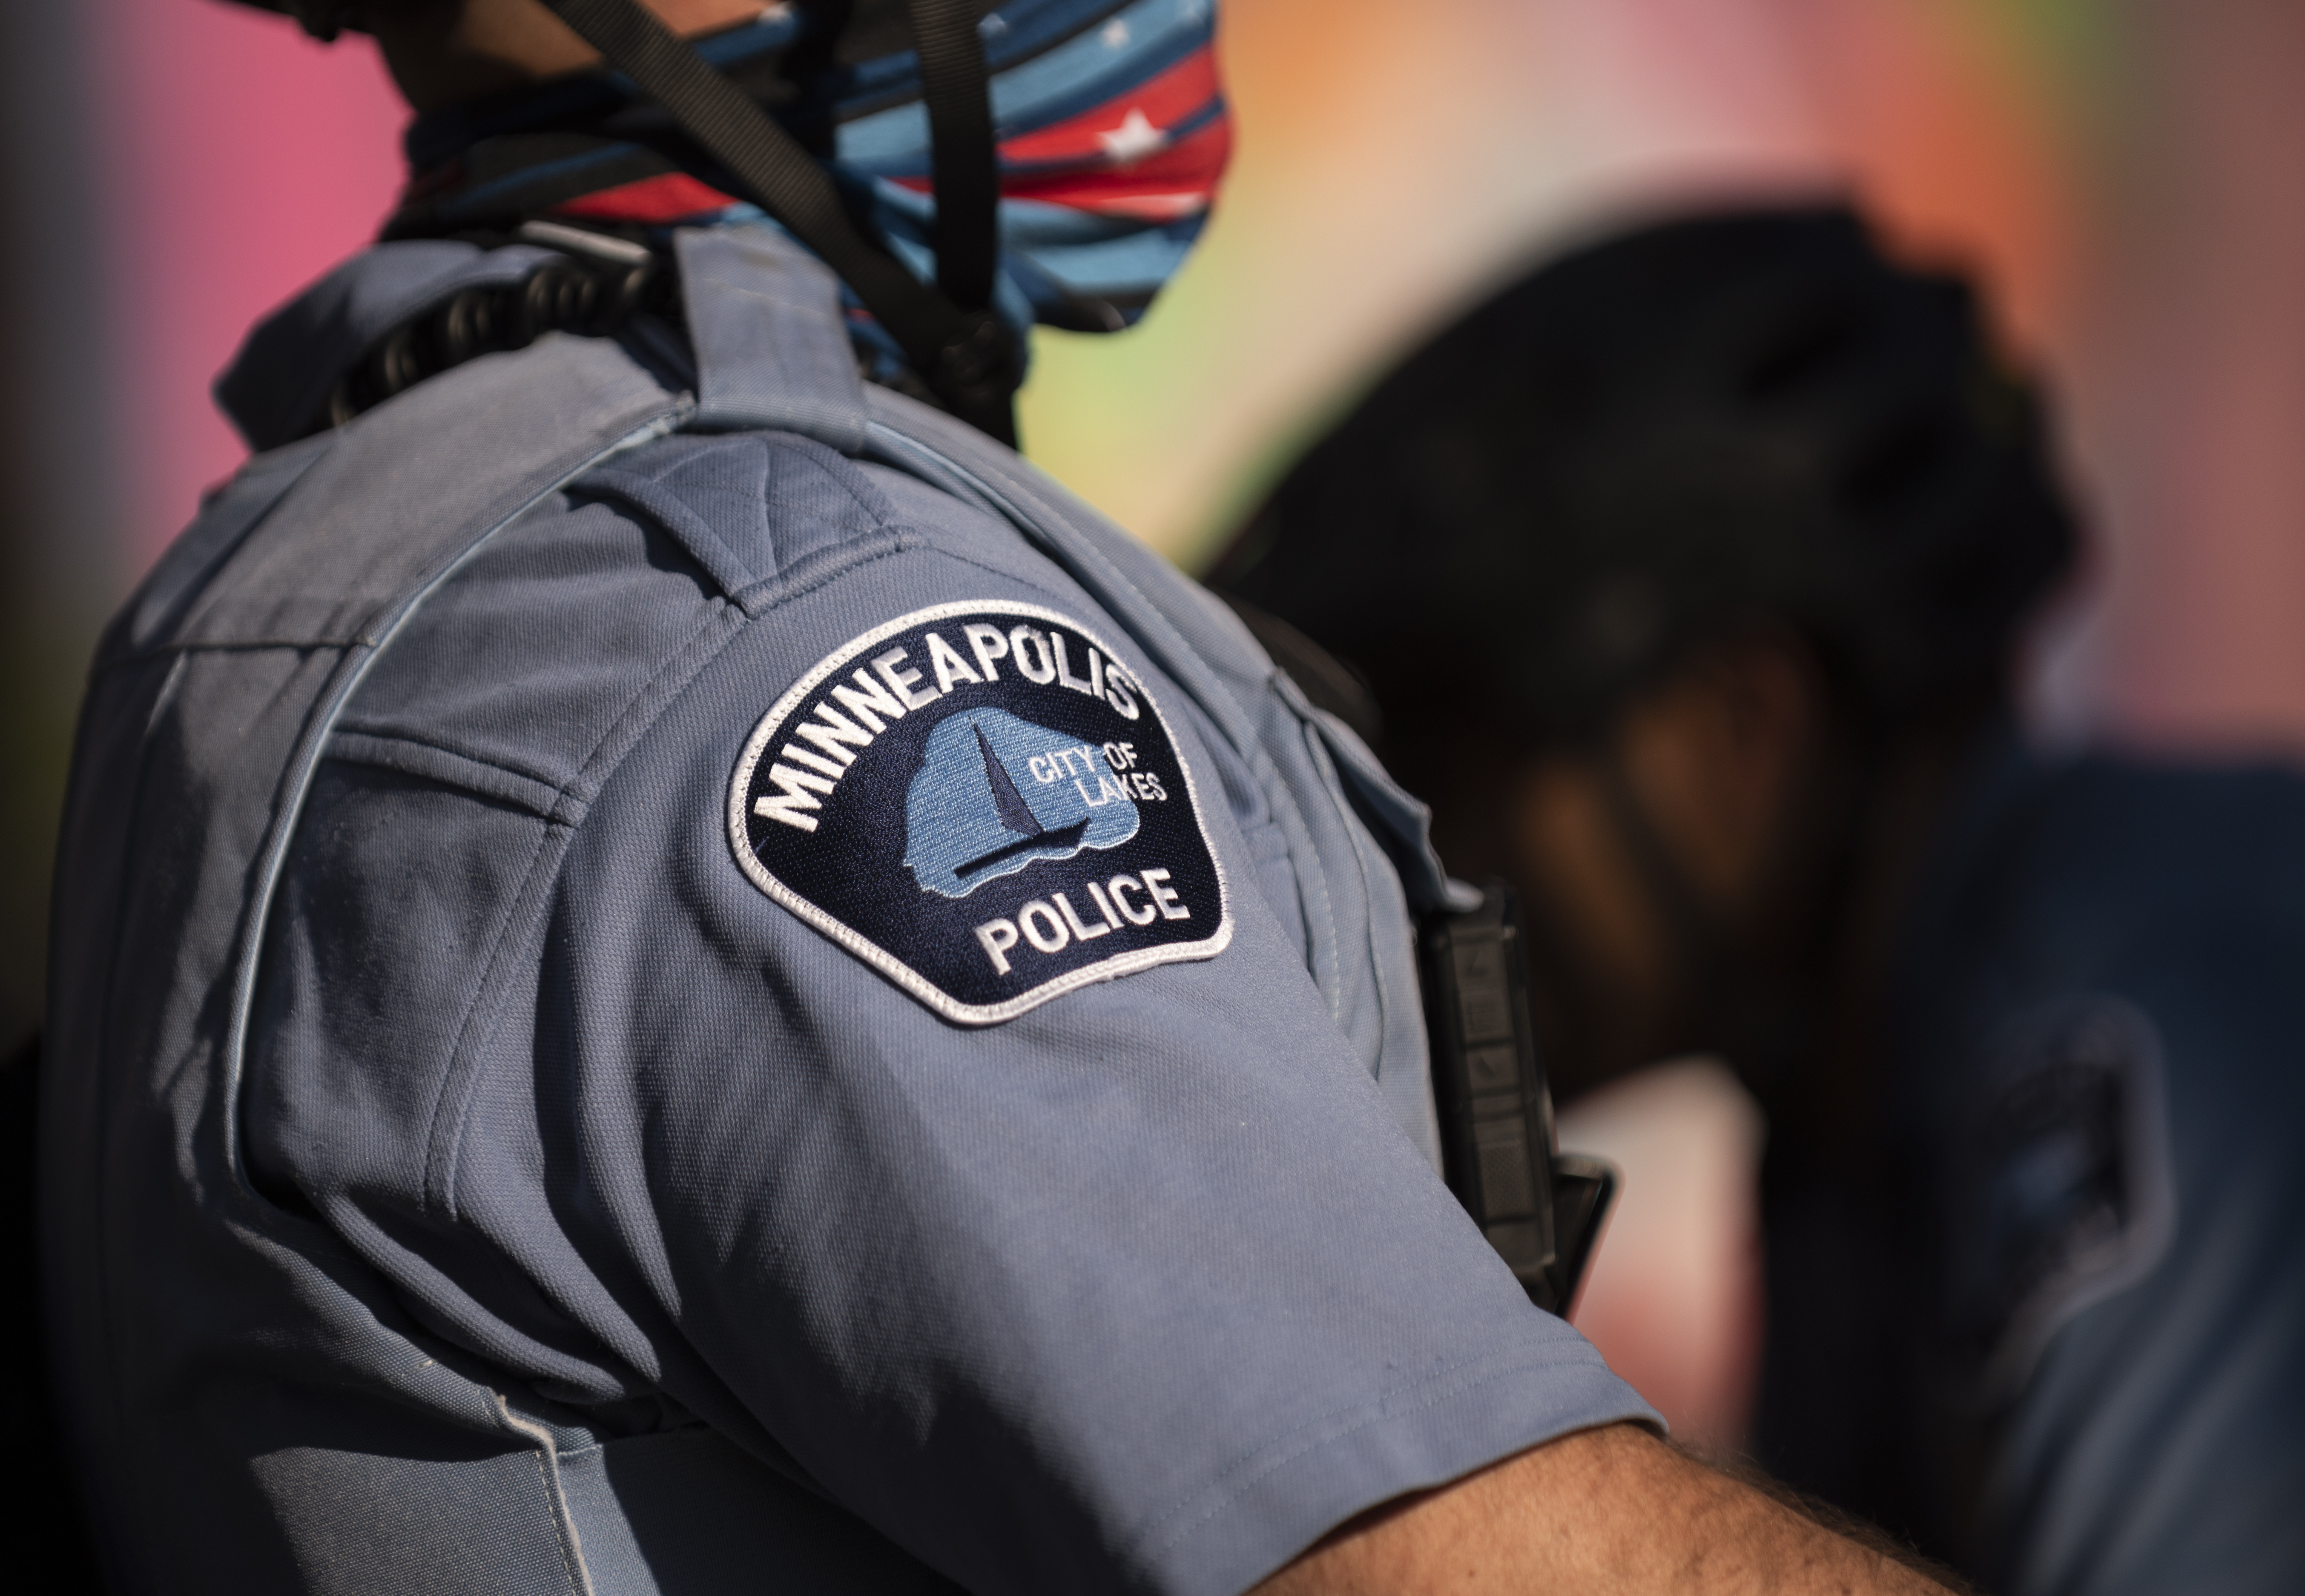 MINNEAPOLIS, MN - JUNE 11: Members of the Minneapolis Police Department monitor a protest on June 11, 2020 in Minneapolis, Minnesota. The MPD has been under scrutiny from residents and local city officials after the death of George Floyd in police custody on May 25. (Photo by Stephen Maturen/Getty Images)